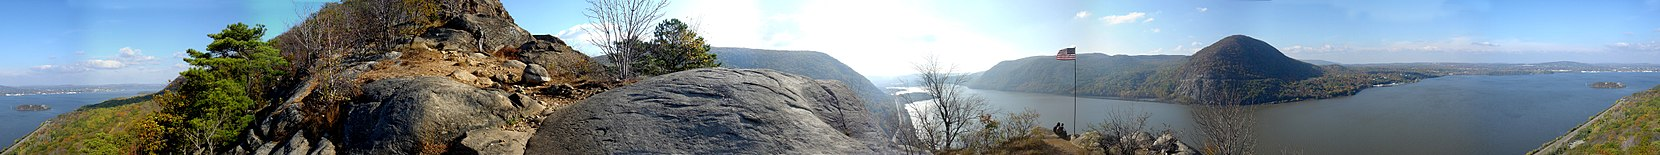 Panorama of Storm King Mt and the Hudson River from the first viewpoint of Breakneck Ridge